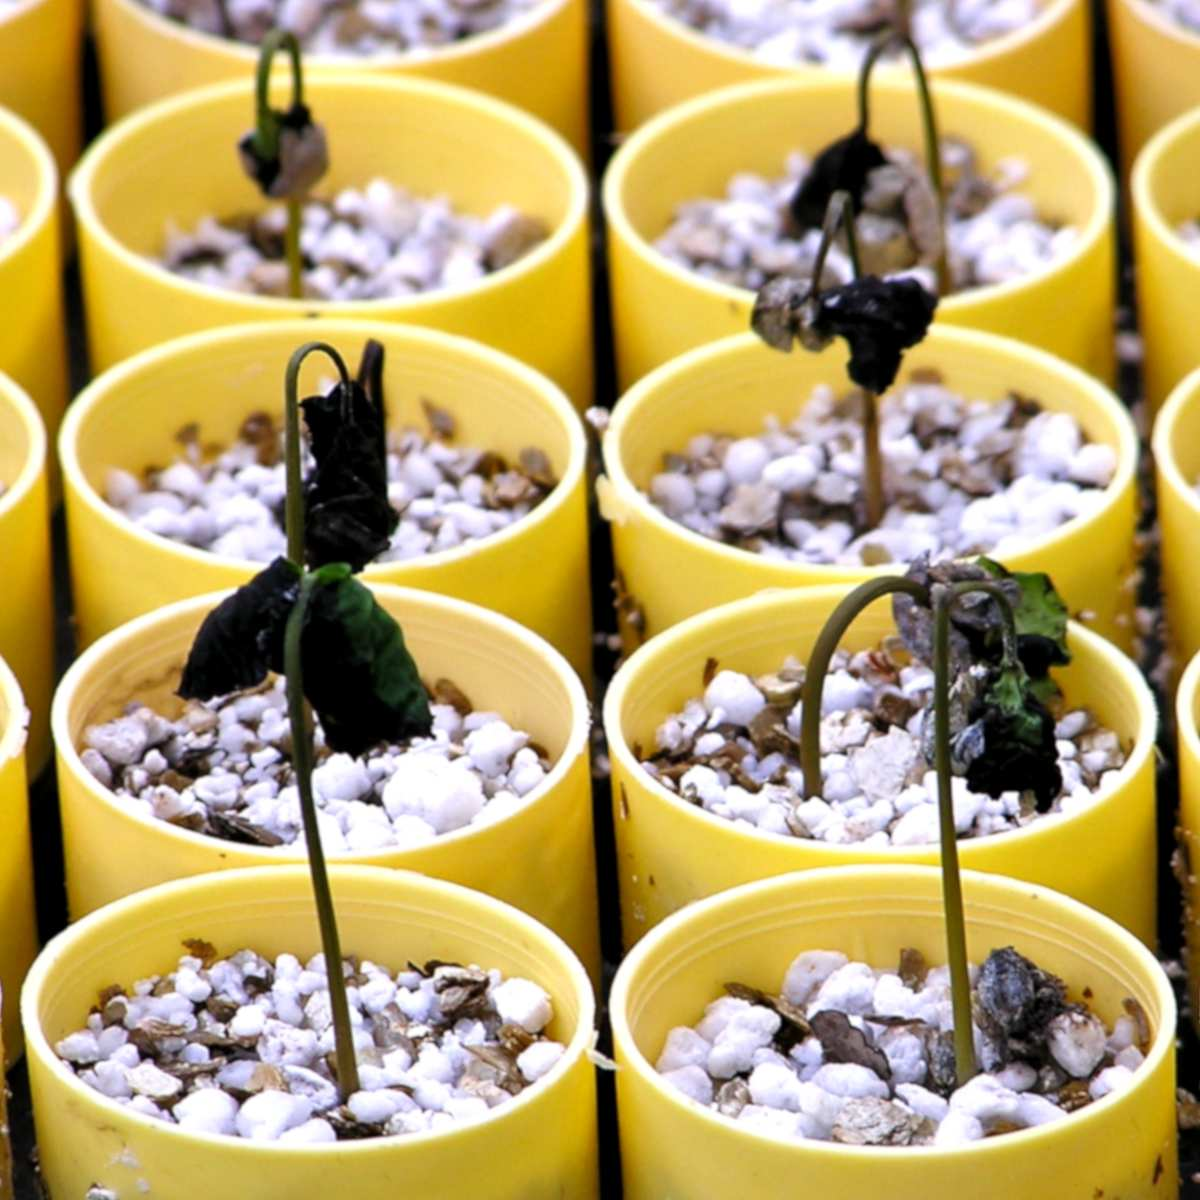 Coffee seedlings dying from damping off.